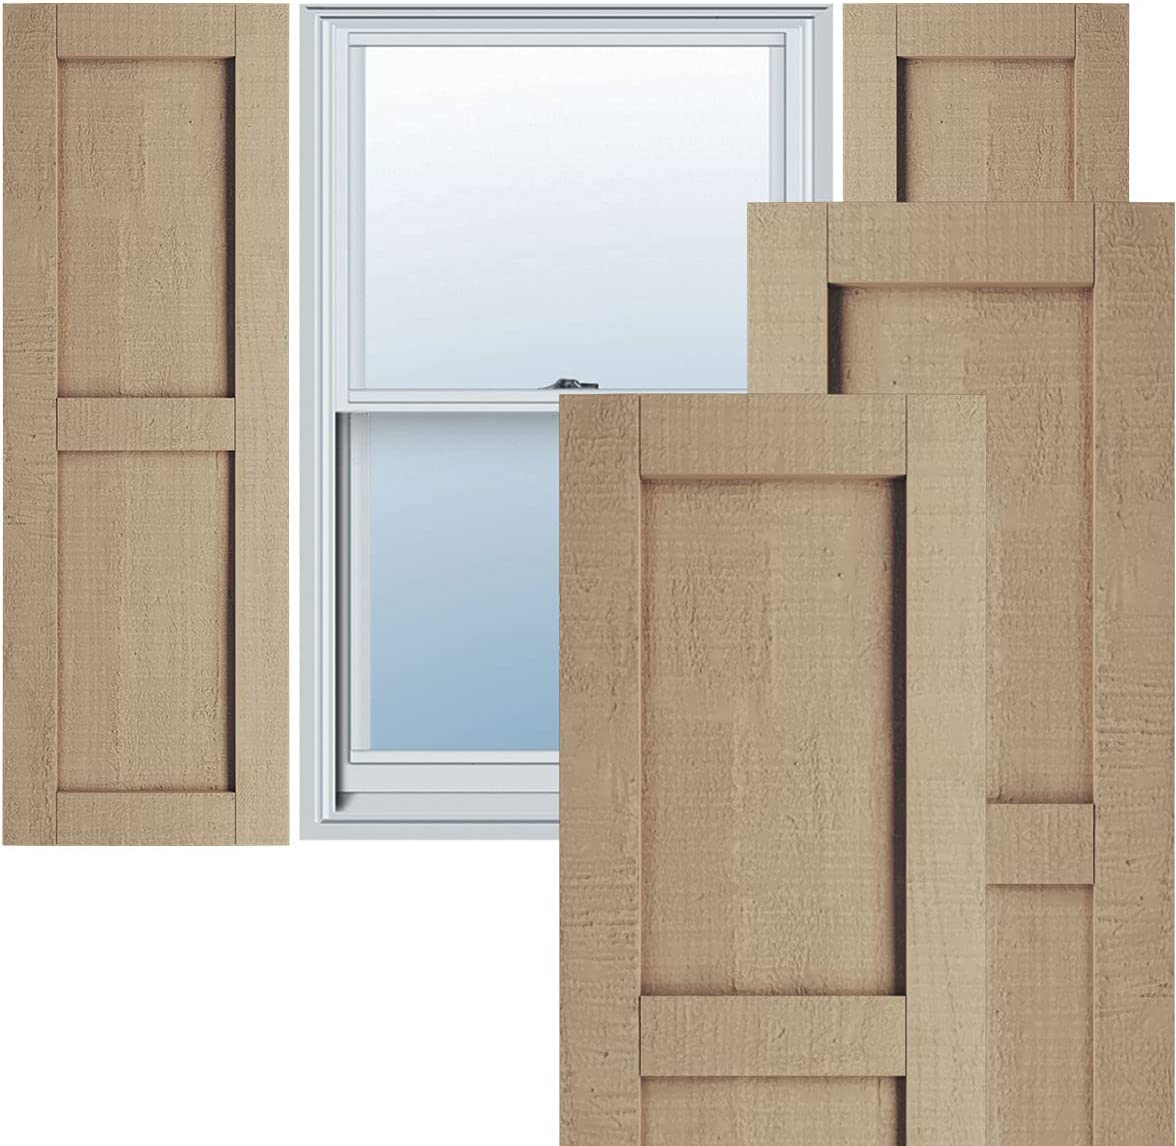 Ekena Millwork SHULVRC Faux Wood Pair Two Shutters Rustic Per Special Campaign Cheap mail order specialty store